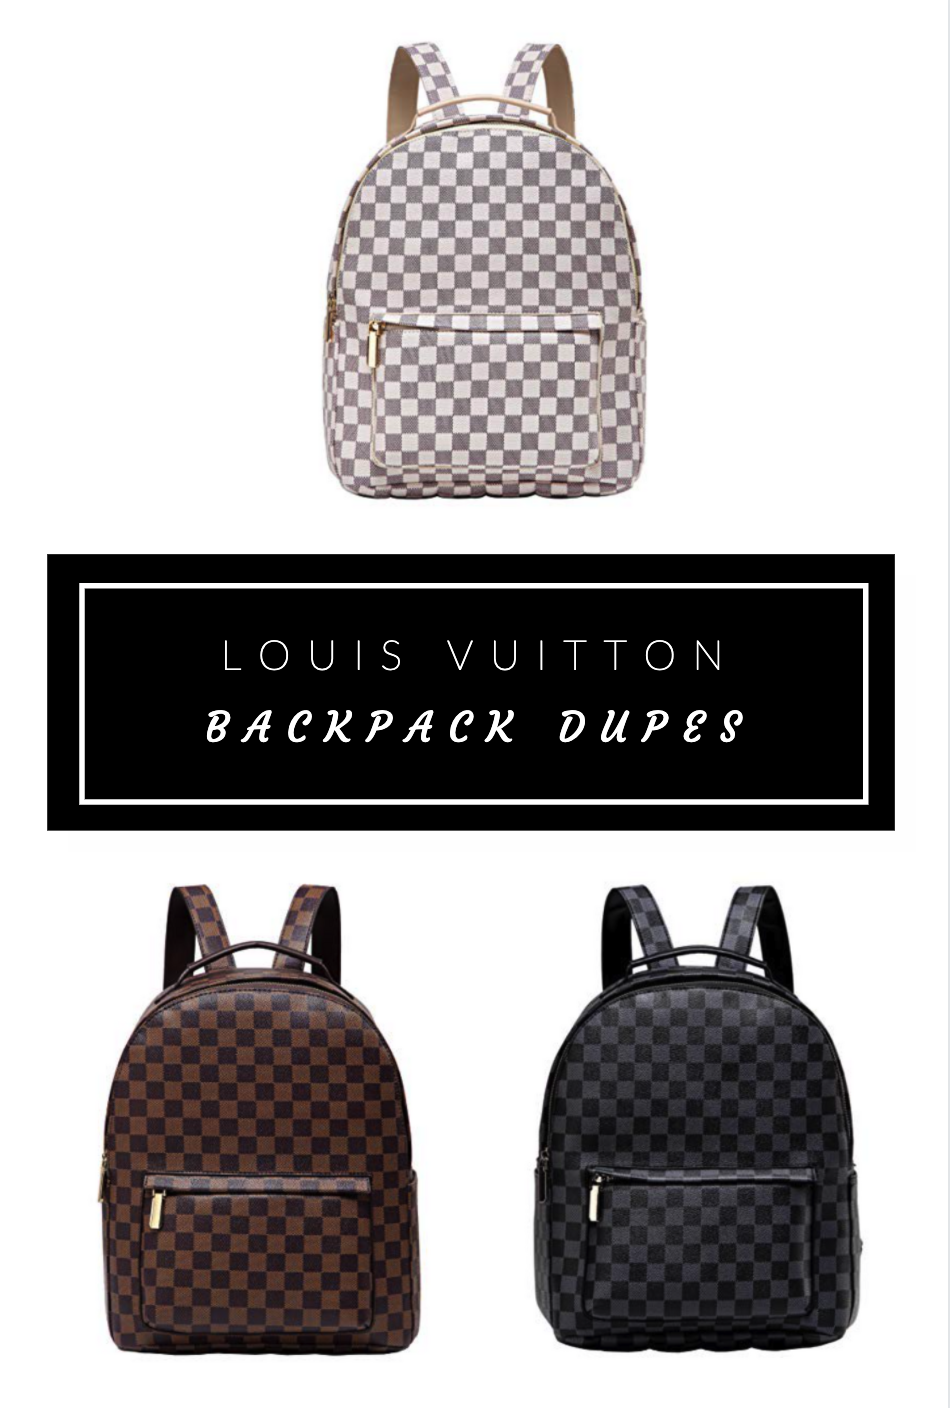 Louis Vuitton Backpack Dupes Under $40